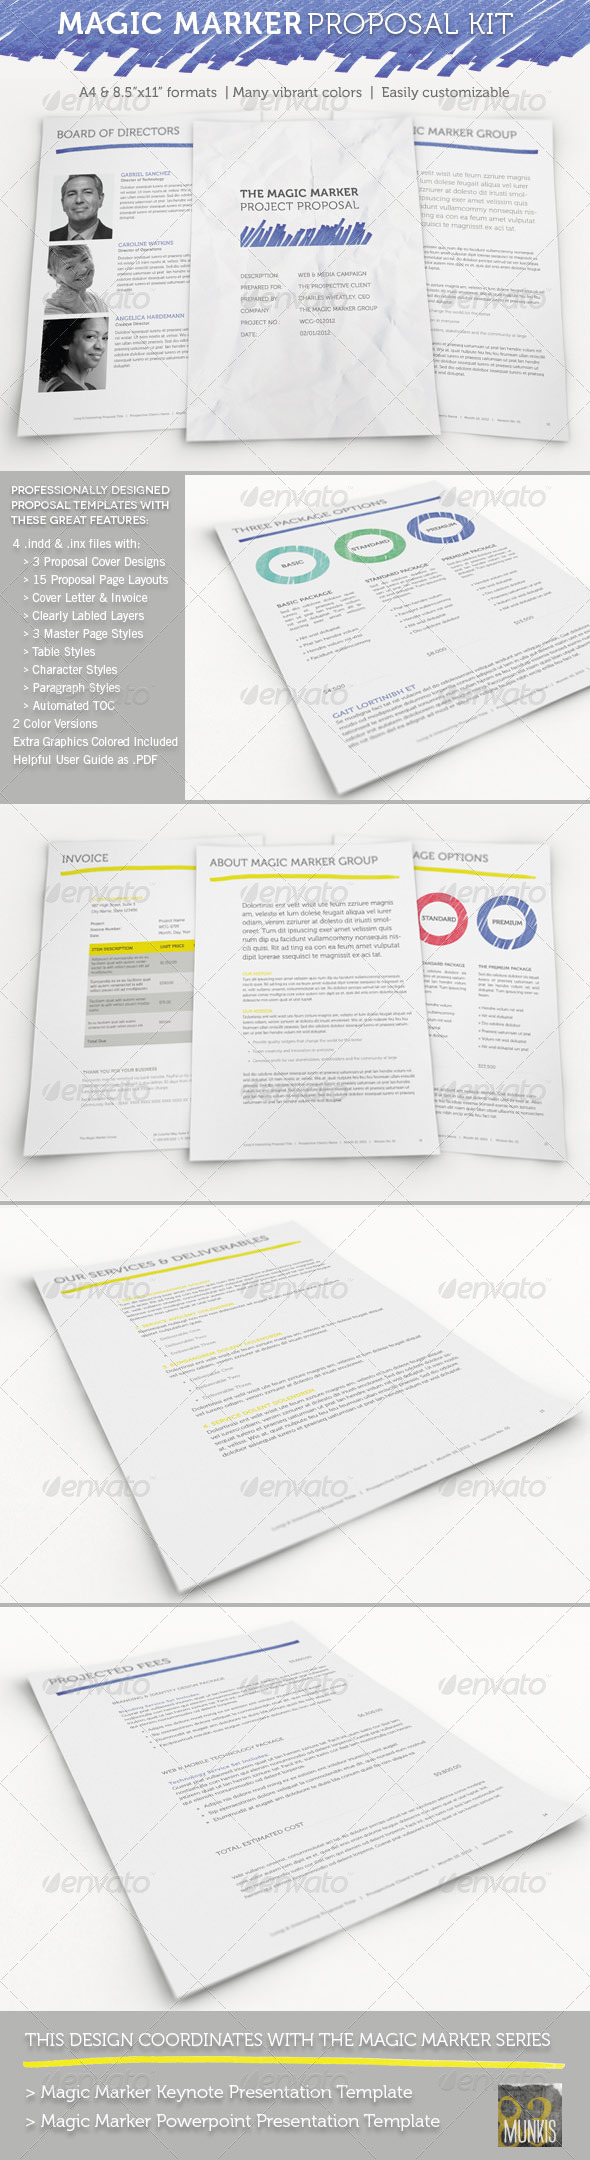 Magic Marker Business Proposal Template - Proposals & Invoices Stationery